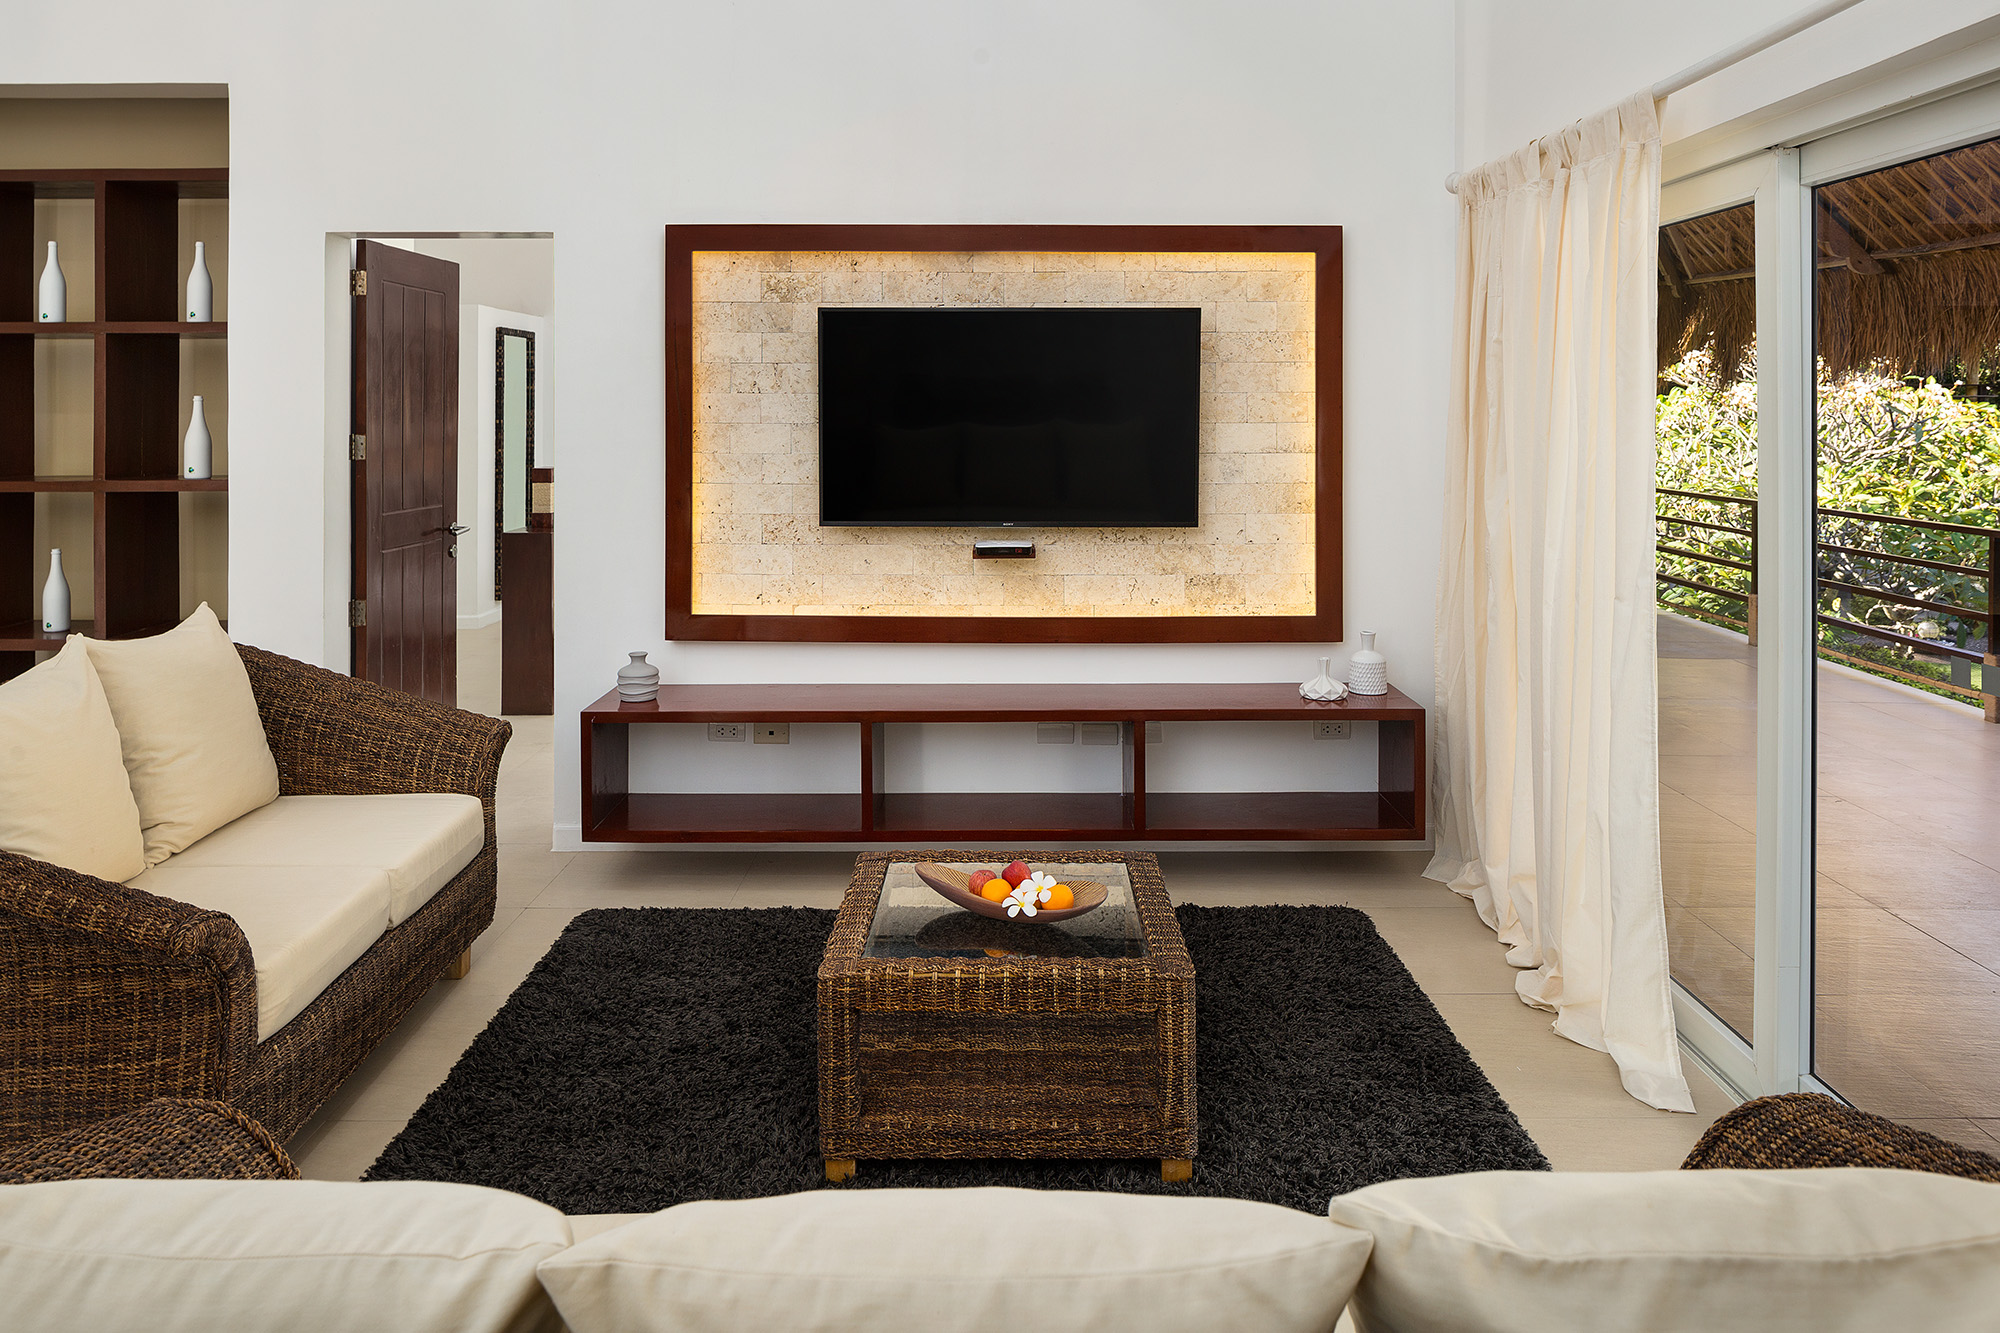 Living room or lounging area of the Penthouse at Atmosphere Resorts & Spa Philippines